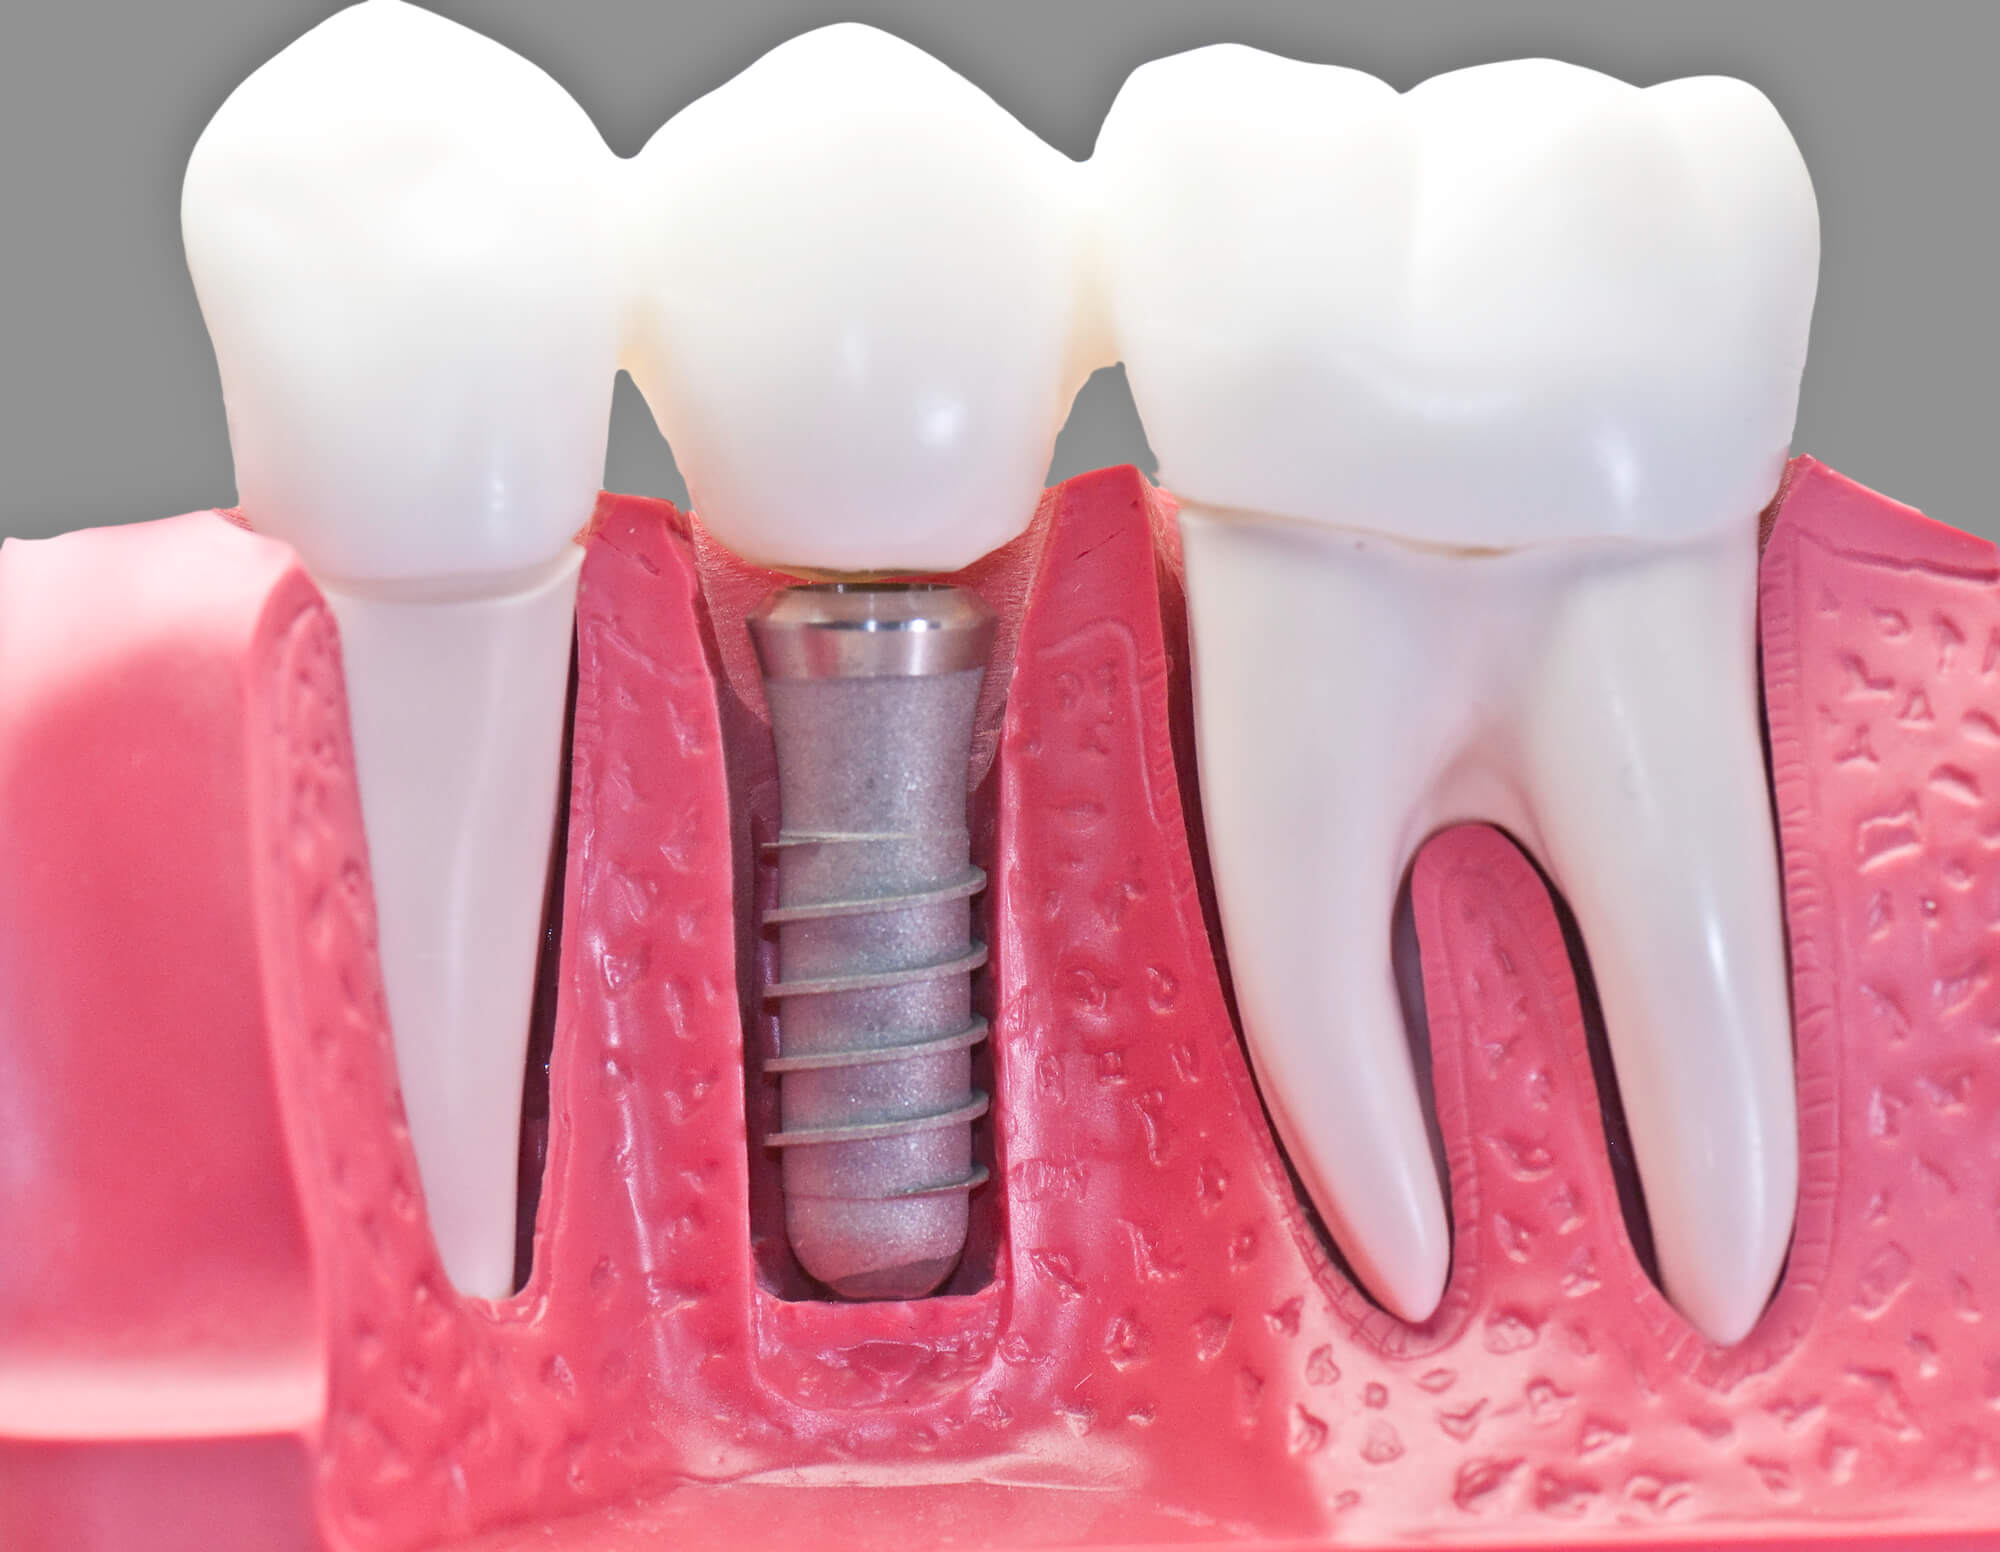 where is the best example of dental implants aventura?